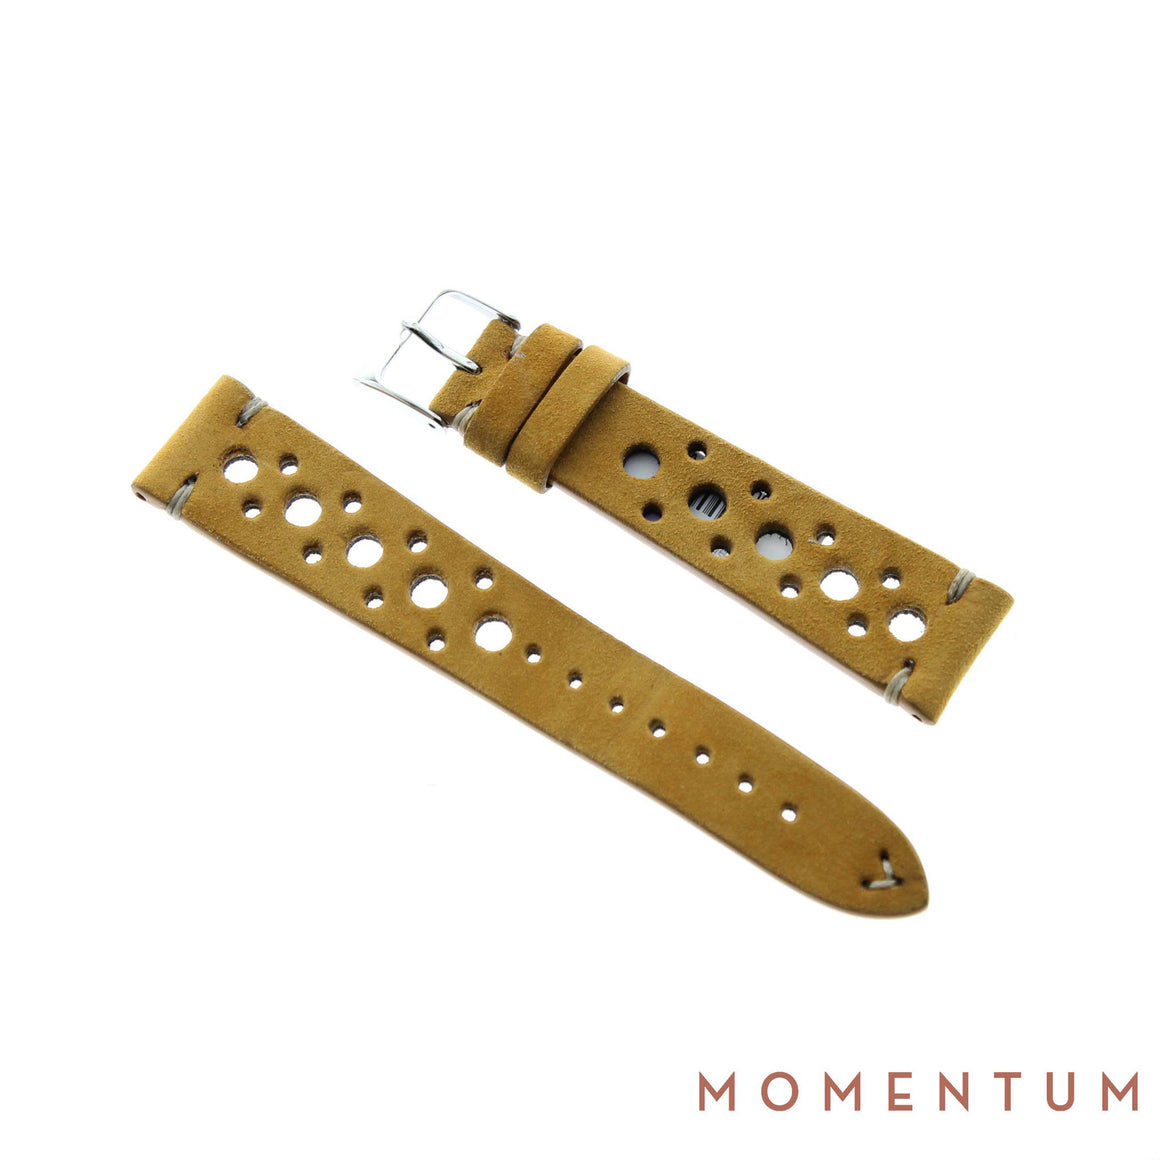 Vintage Strap - Tan Suede with holes - Calf Leather - Momentum Dubai